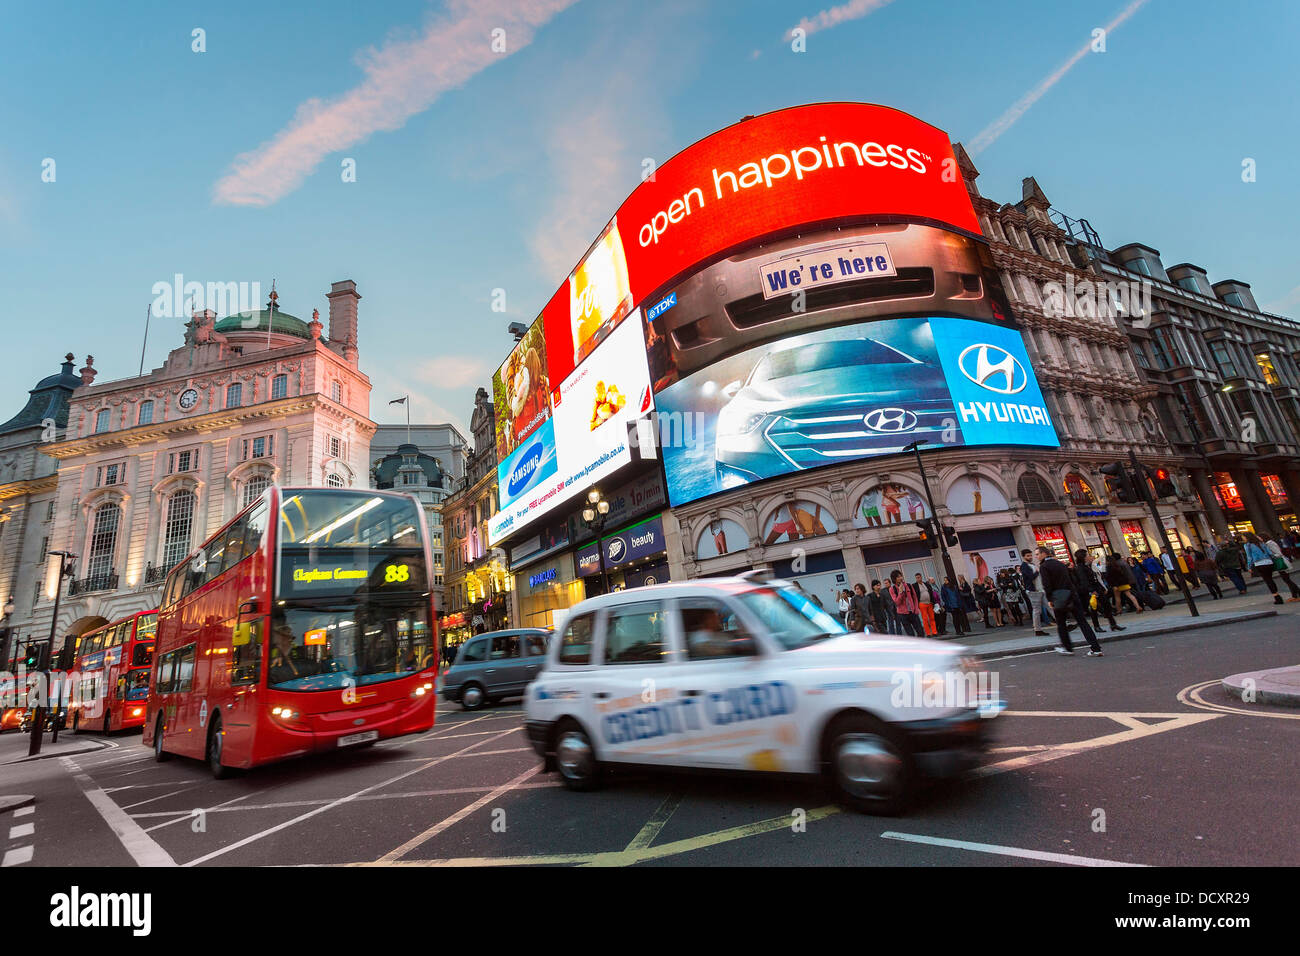 london taxi sign stockfotos london taxi sign bilder alamy. Black Bedroom Furniture Sets. Home Design Ideas